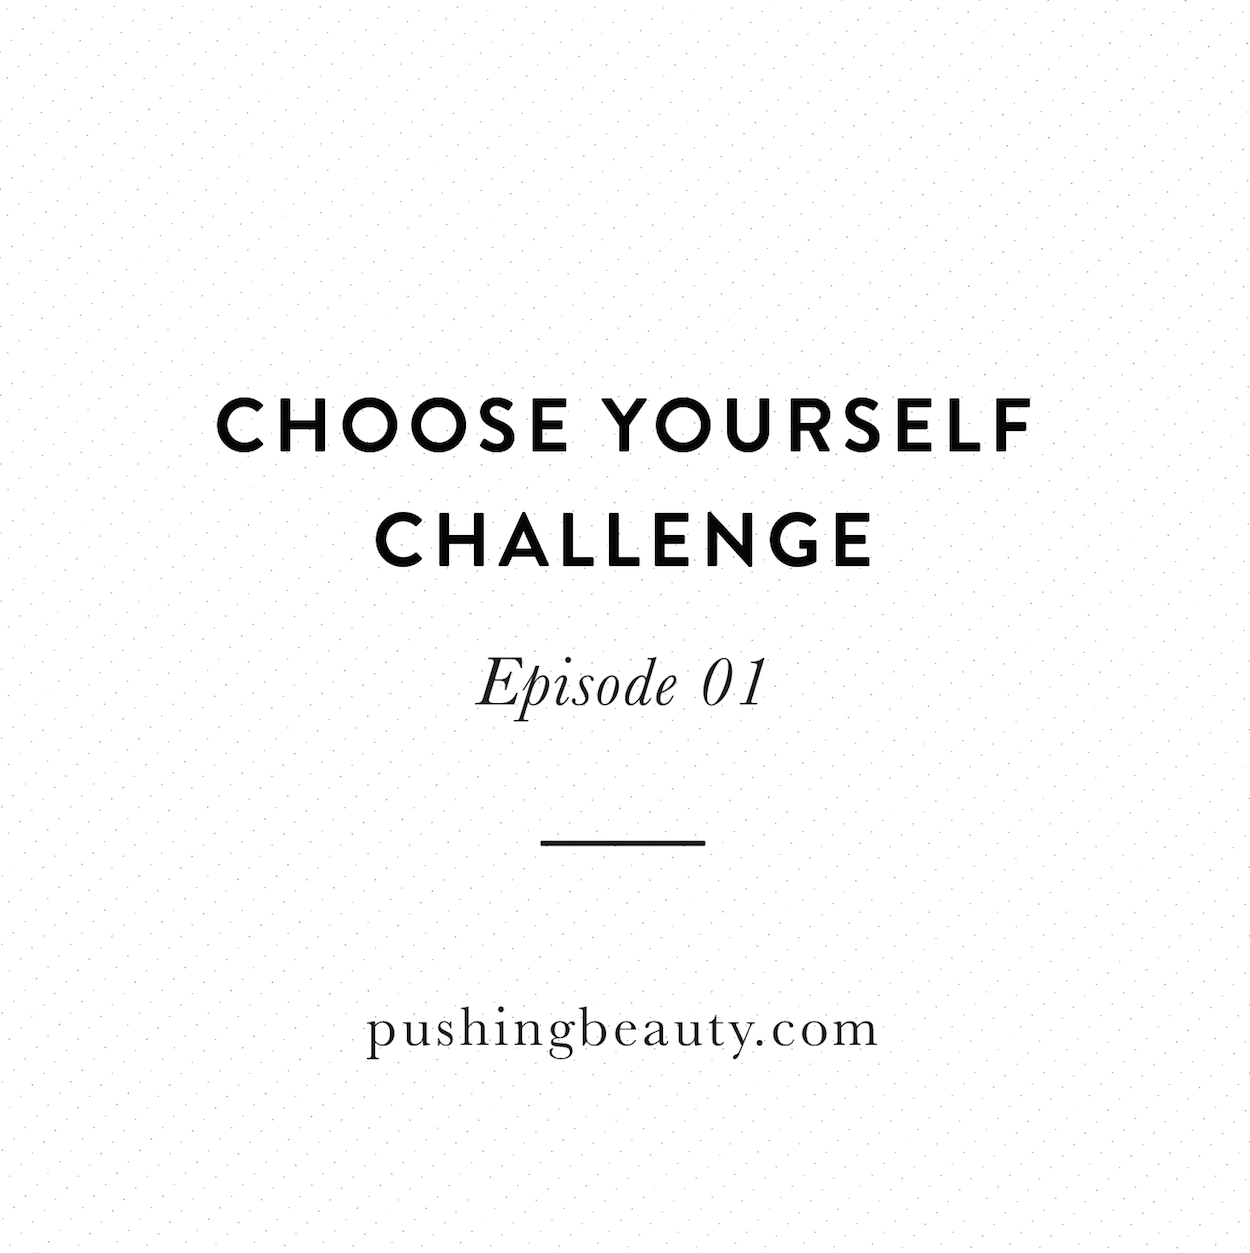 Choose Yourself Challenge Podcast